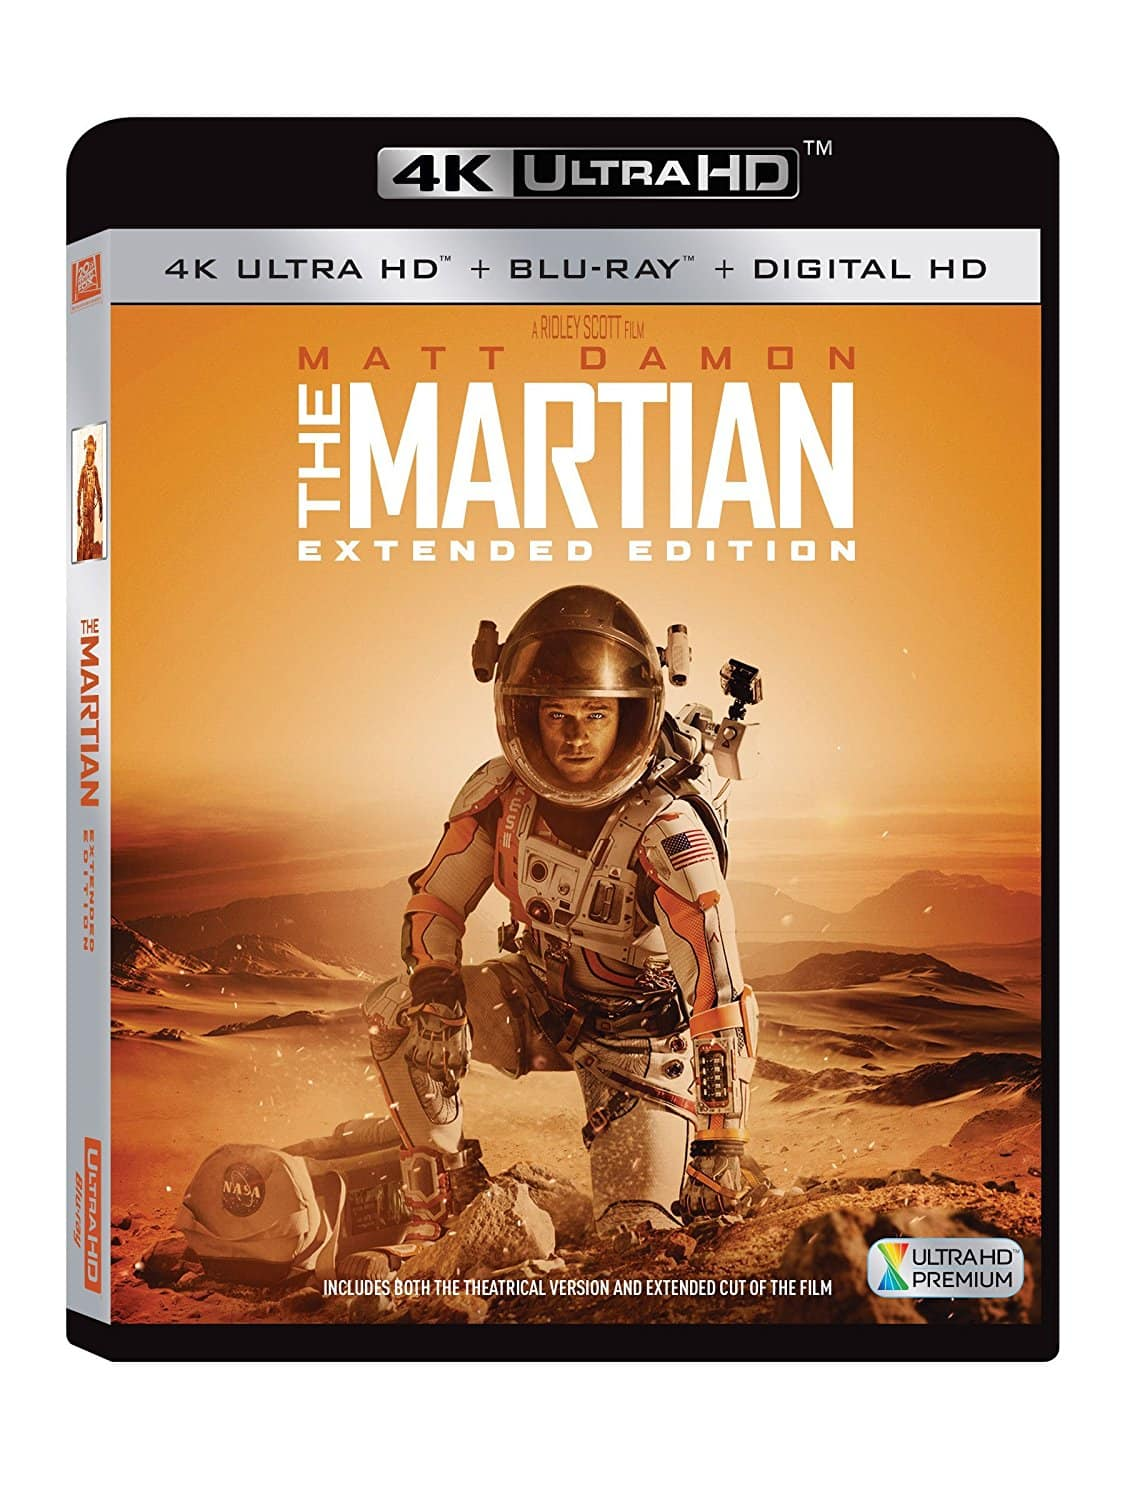 4k ultra hd blu rays the martian extended edition the. Black Bedroom Furniture Sets. Home Design Ideas